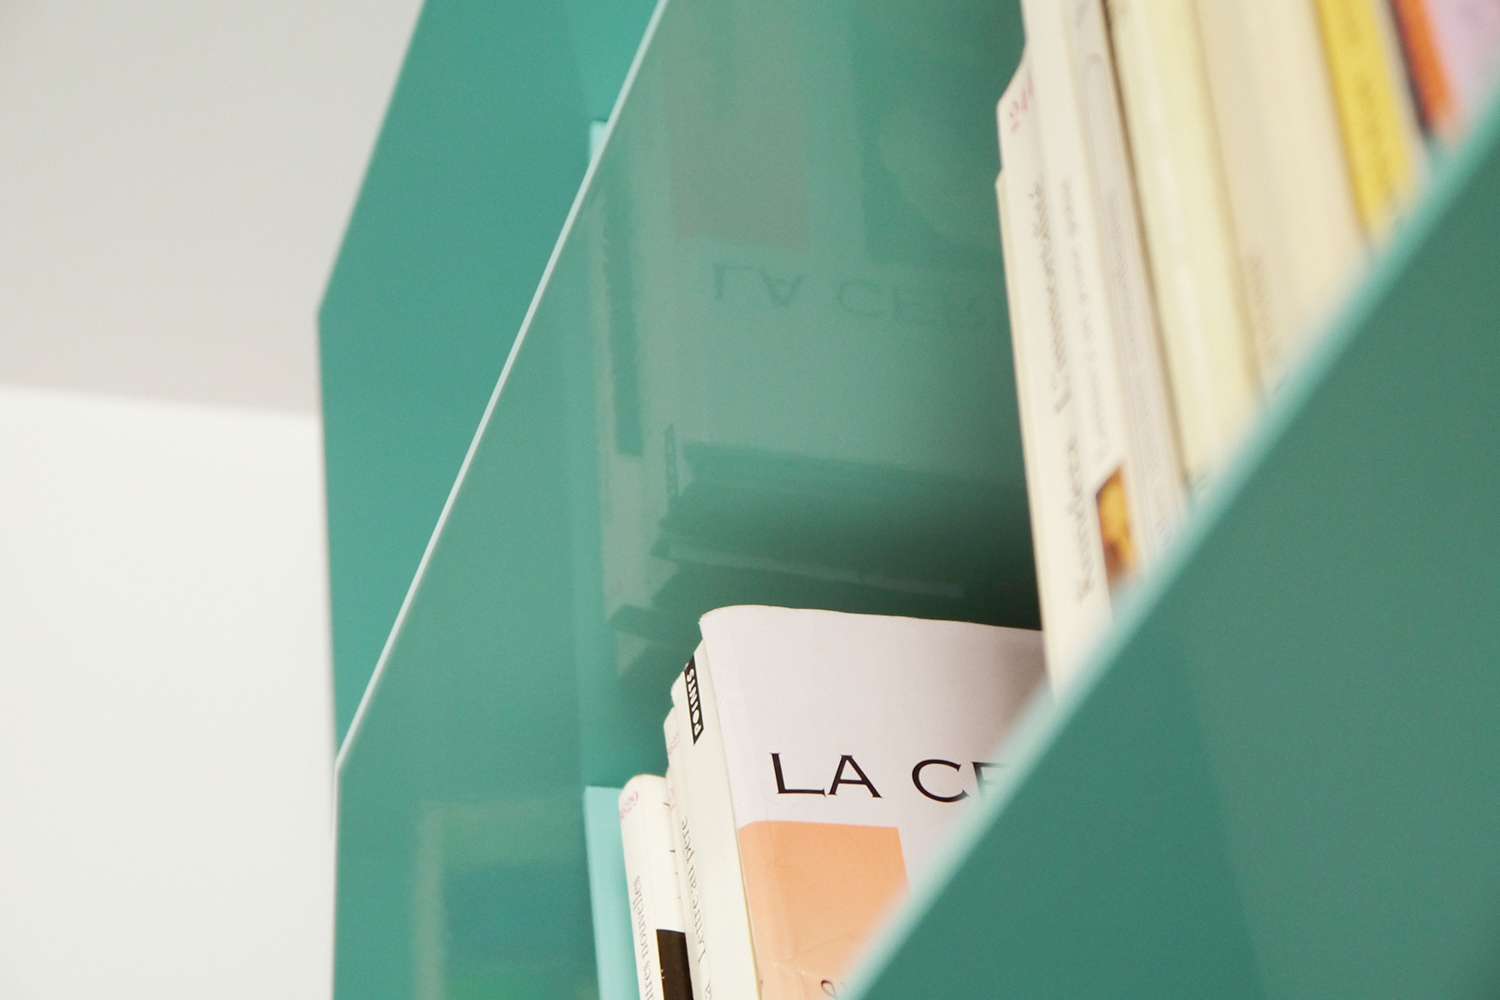 Close-up view of a custom bookcase shelf, finished in turquoise baked paint.